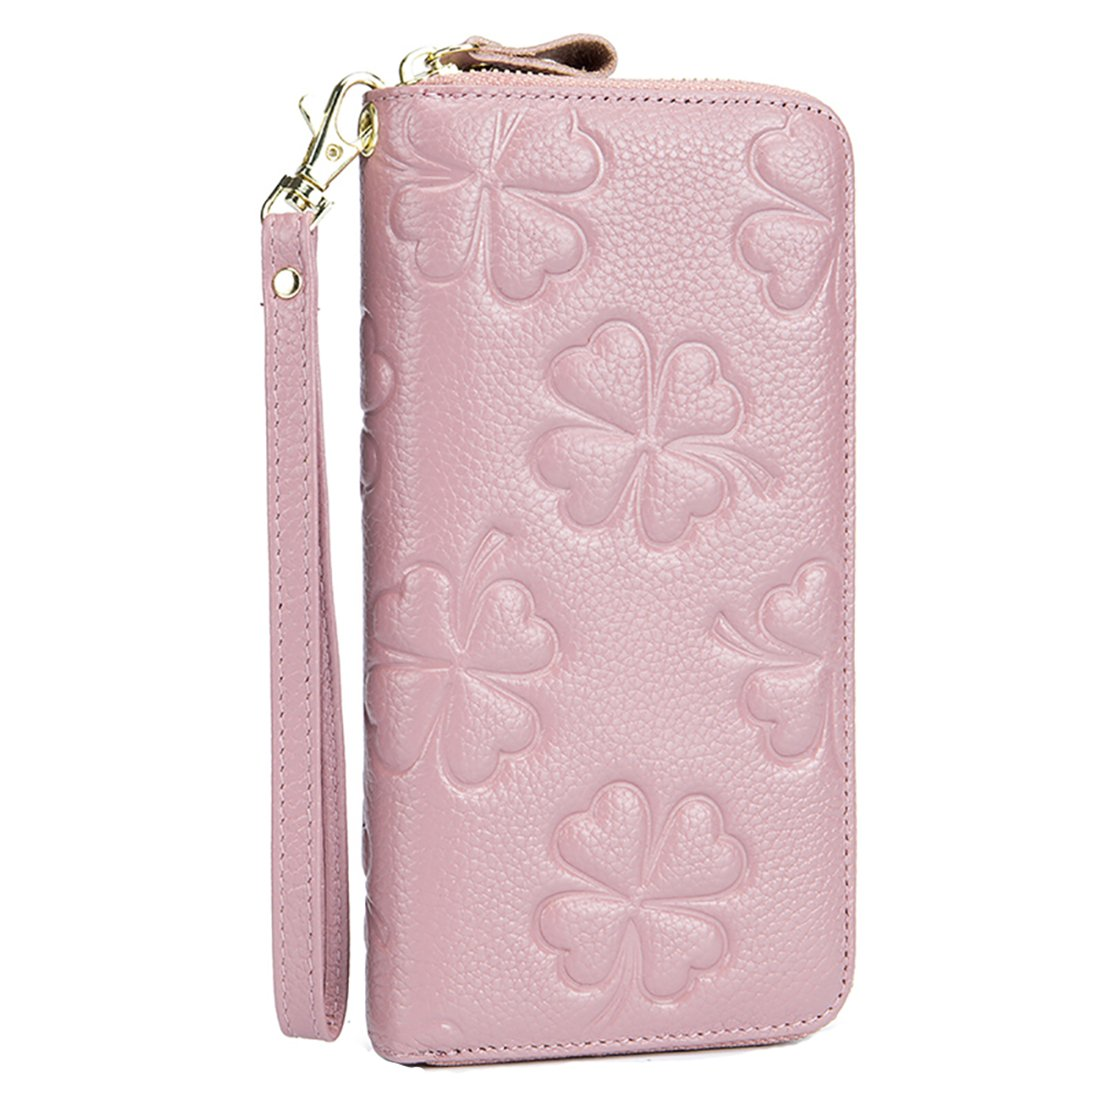 Women RFID Wallet Genuine Leather Clutch Wristlet Handbag Purse Embossed Flower Credit Card Holder HASFINE